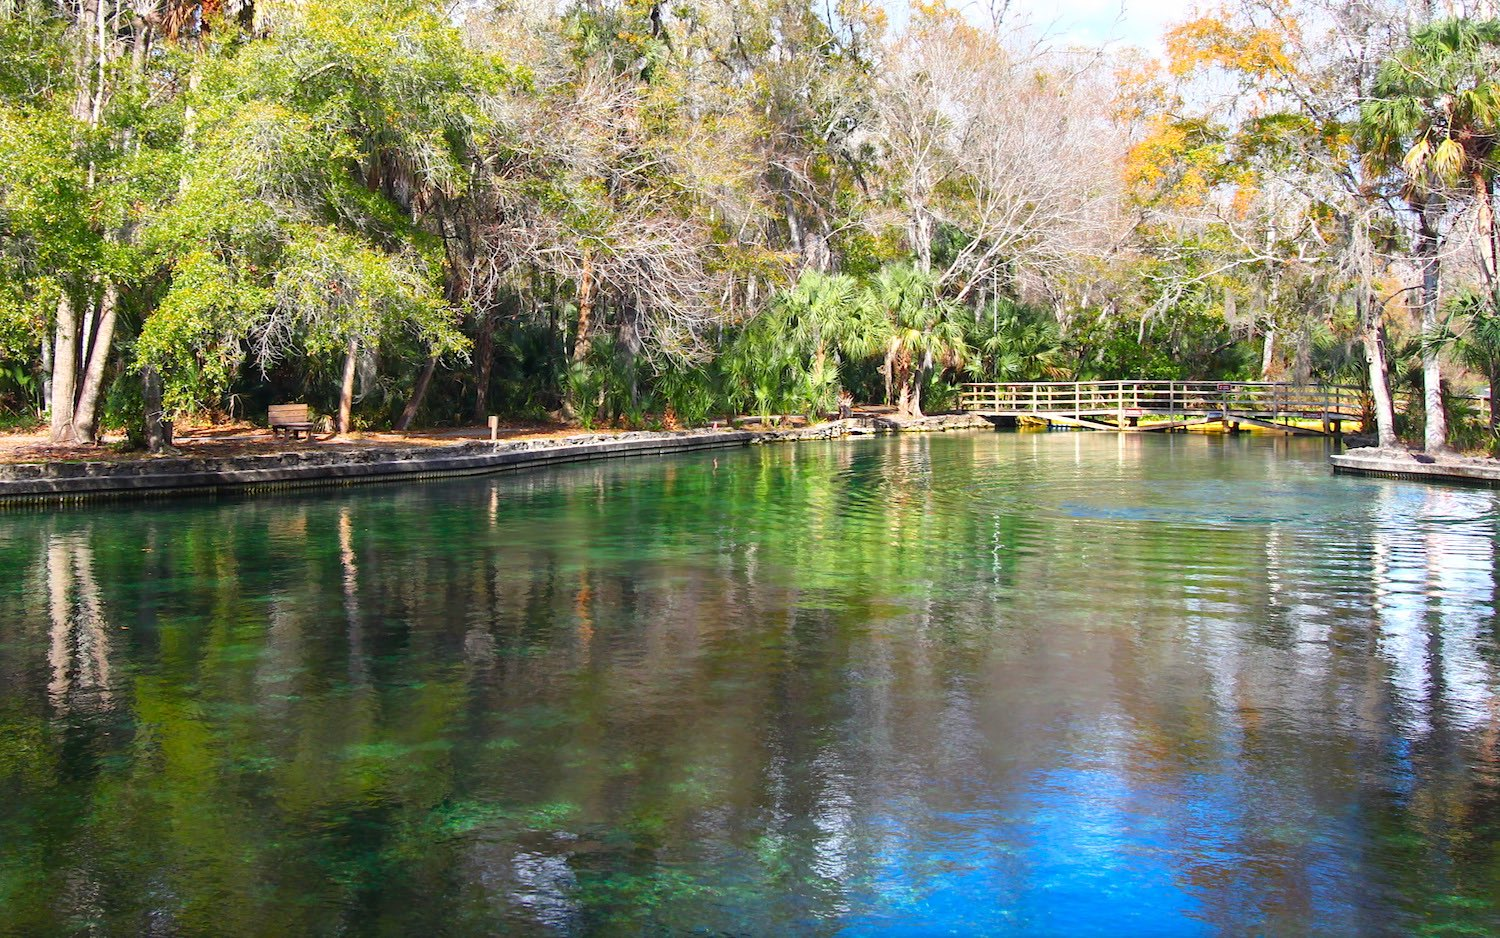 Kelly Park: 3 Awesome Things To Do at Rock Springs, Apopka